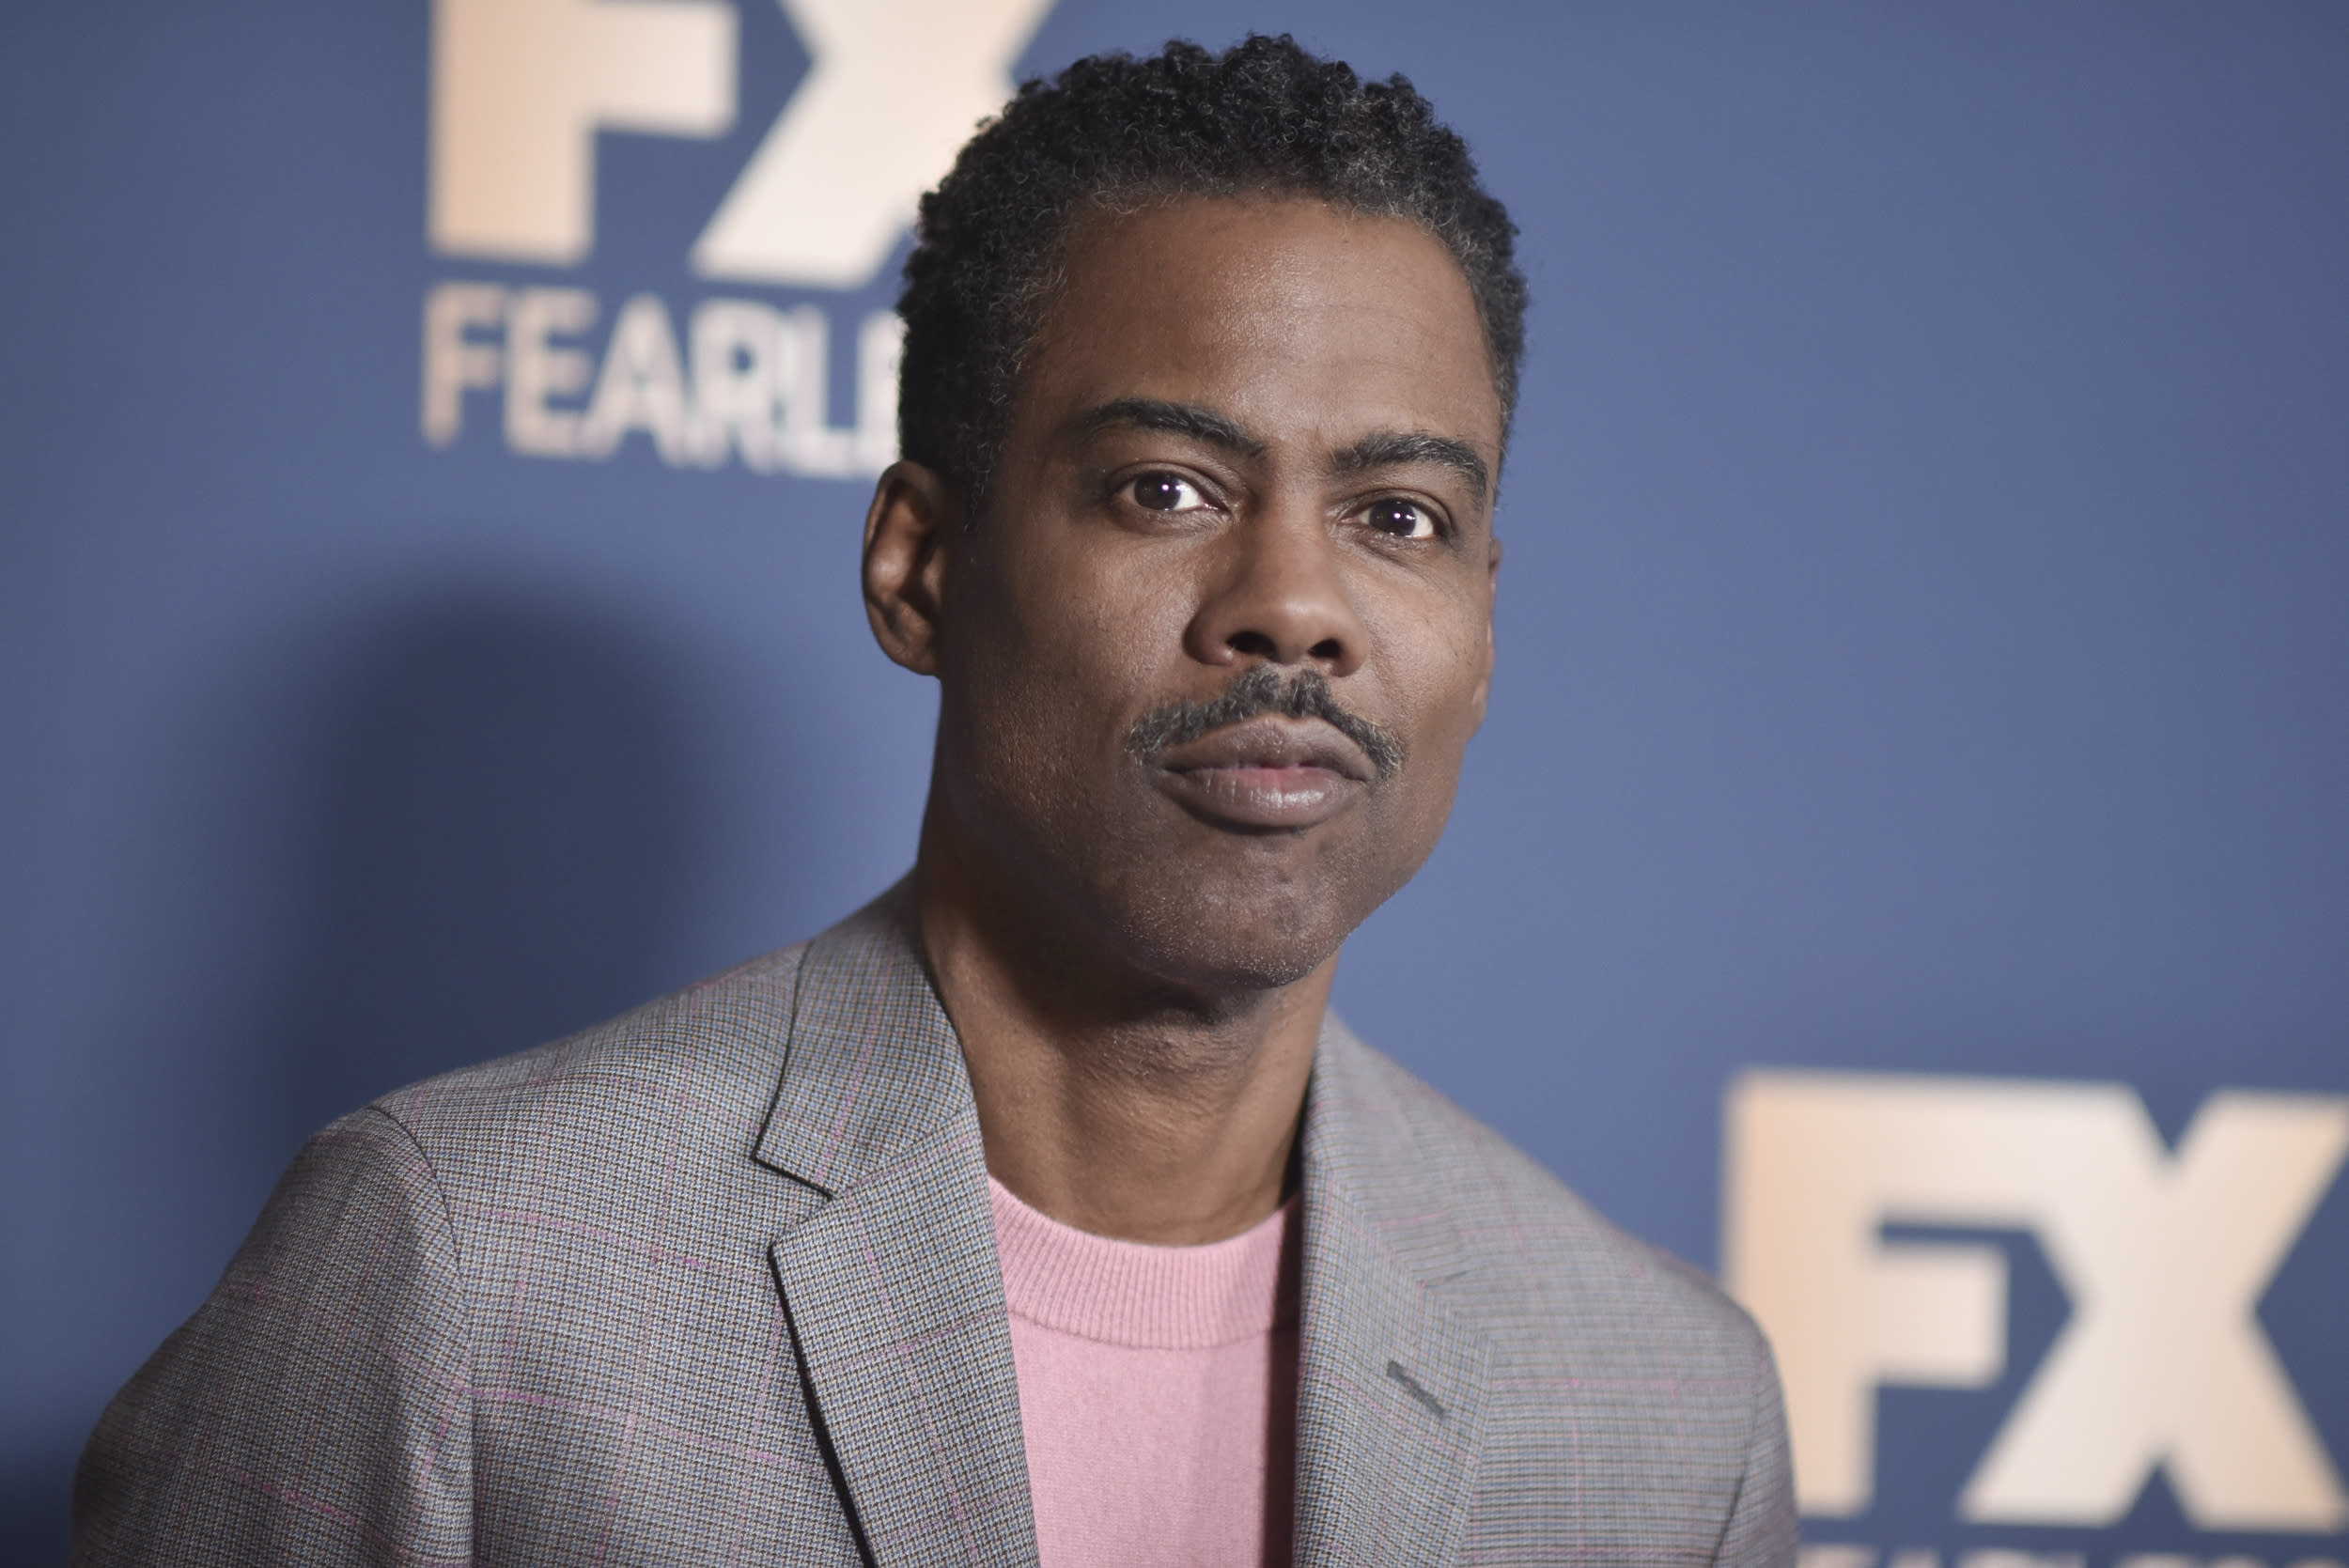 Chris Rock poses at the the FX portion of theTelevision Critics Association Winter press tour on Thursday, Jan. 9, 2020, in Pasadena, Calif. (Photo by Richard Shotwell/Invision/AP)